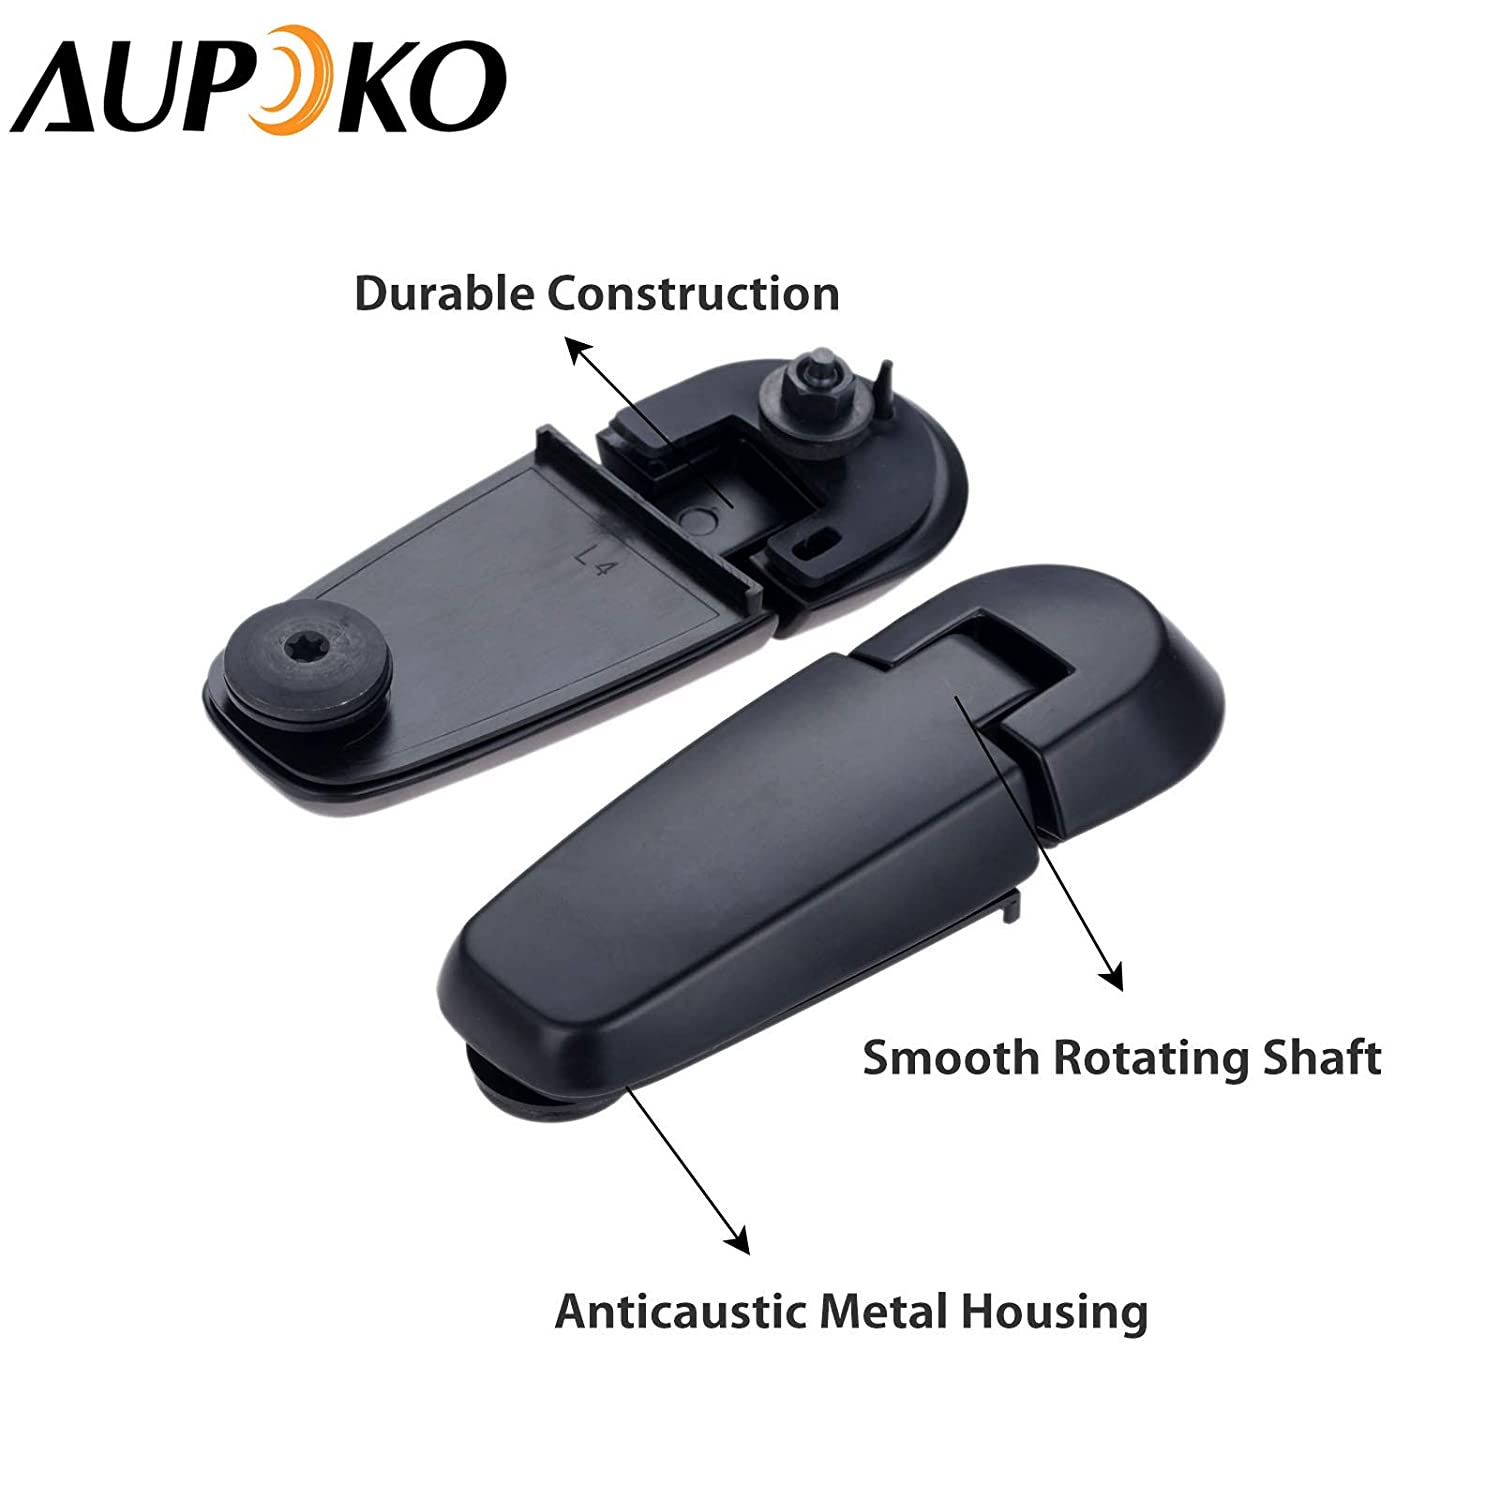 Aupoko Rear Window Hinge Liftgate Glass Hinge Set Left Right Pair Rear Lift Gate Hinge Replace# 6L2Z-78420A68-AA 6L2Z-78420A69-AA Mercury Mountaineer 2006-2010 Fits for Ford Explorer